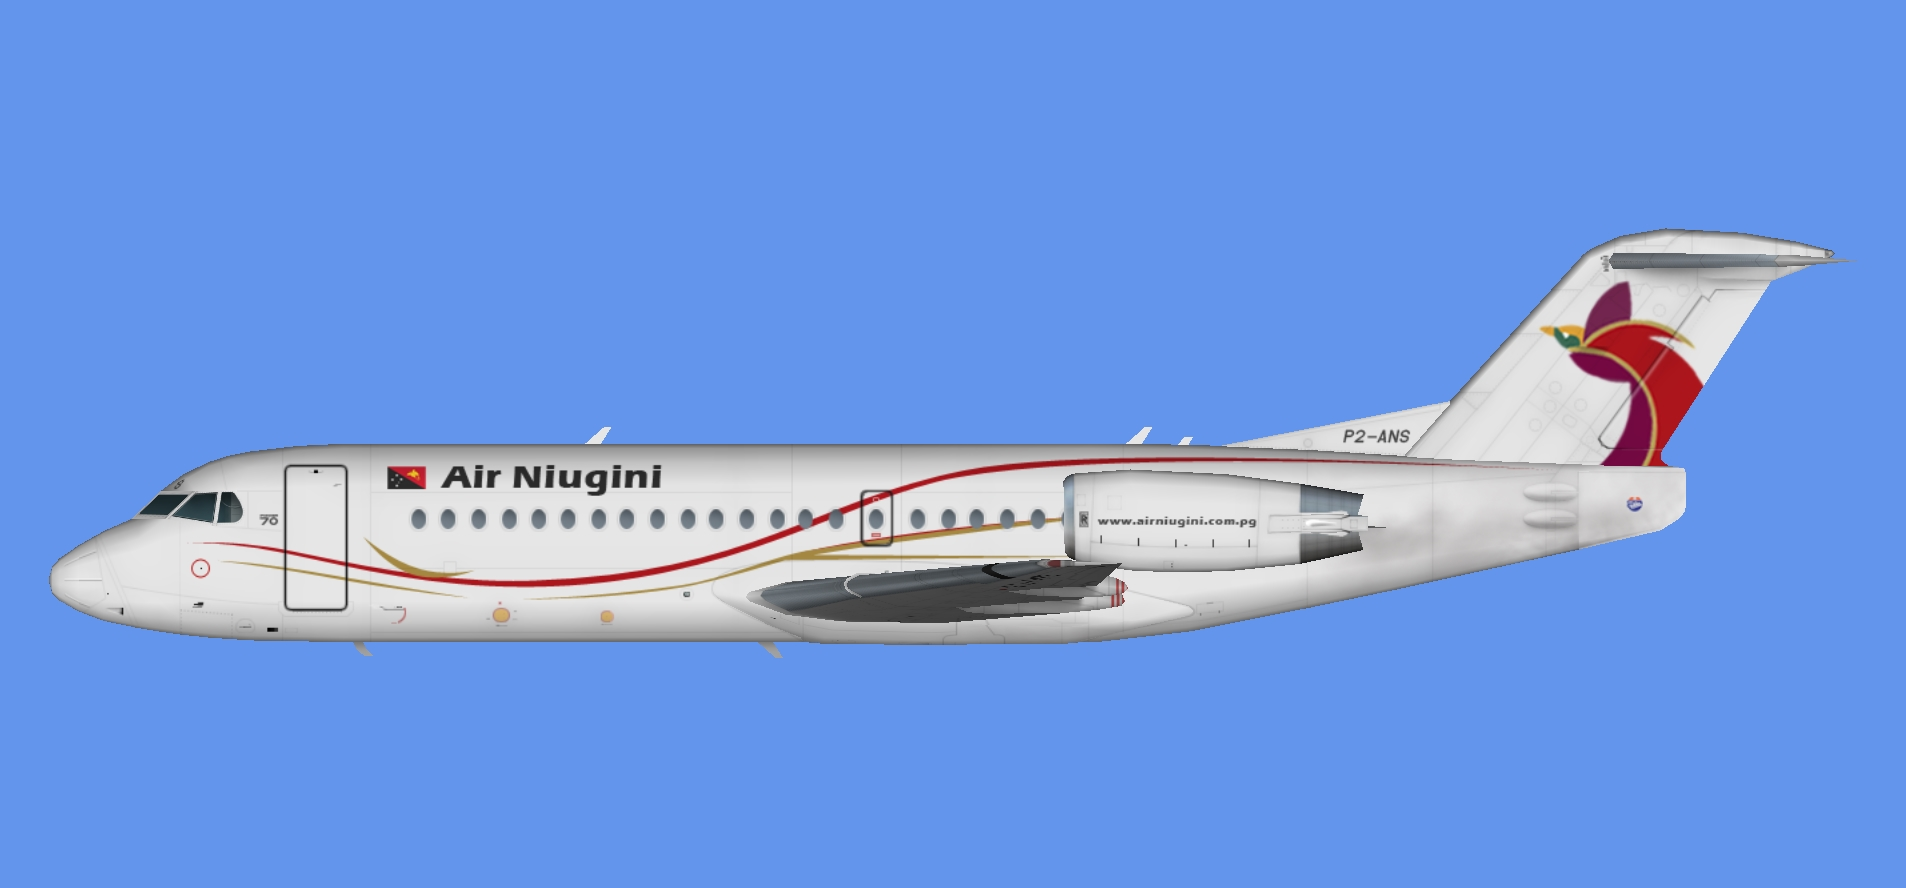 Air Niugini Fokker 70